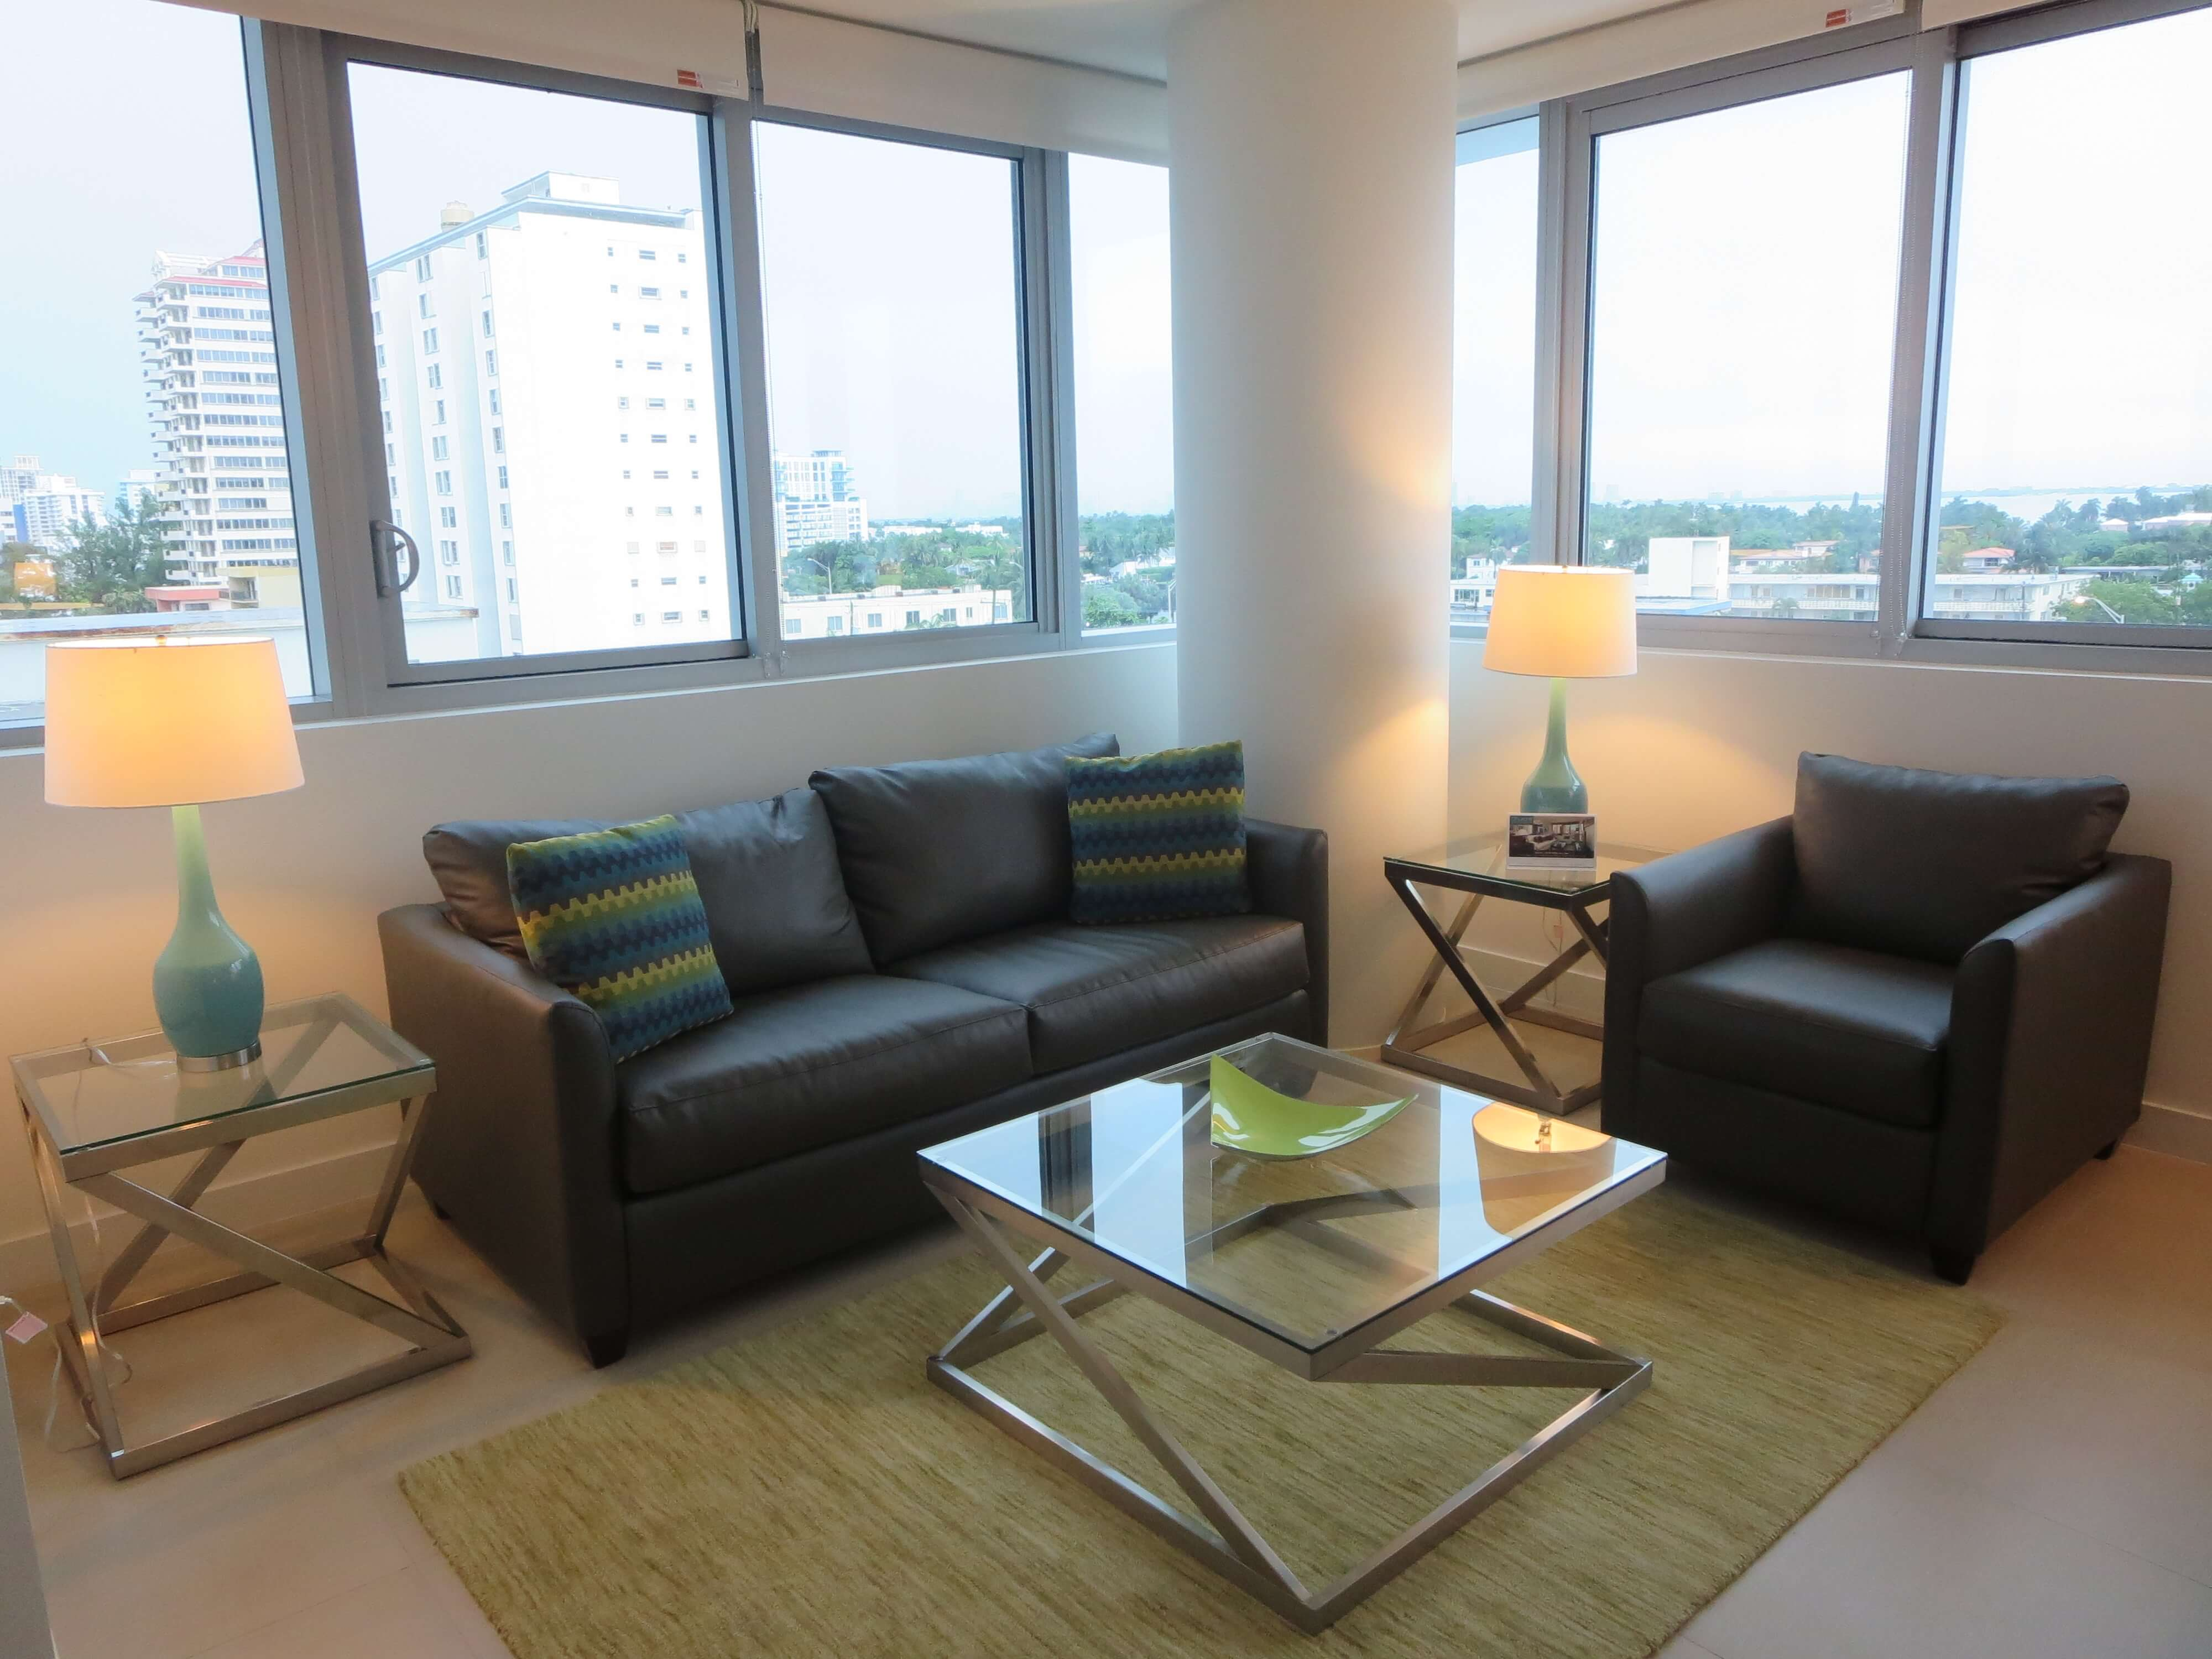 furnished 1 bedroom apartment for rent in miami beach miami area